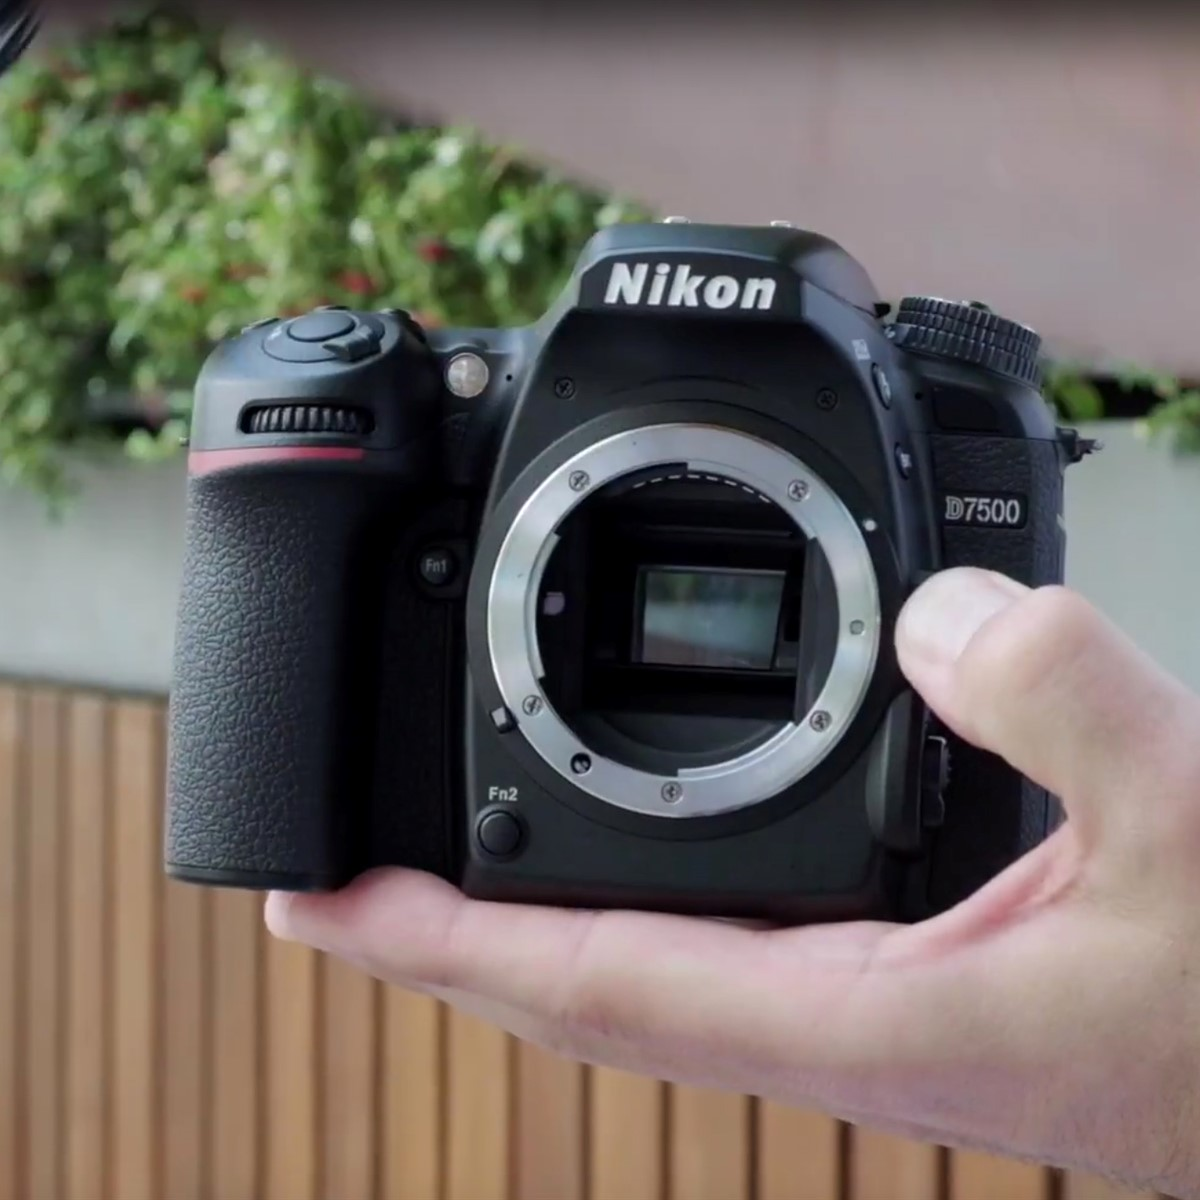 Video: Nikon D7500 first look: Digital Photography Review